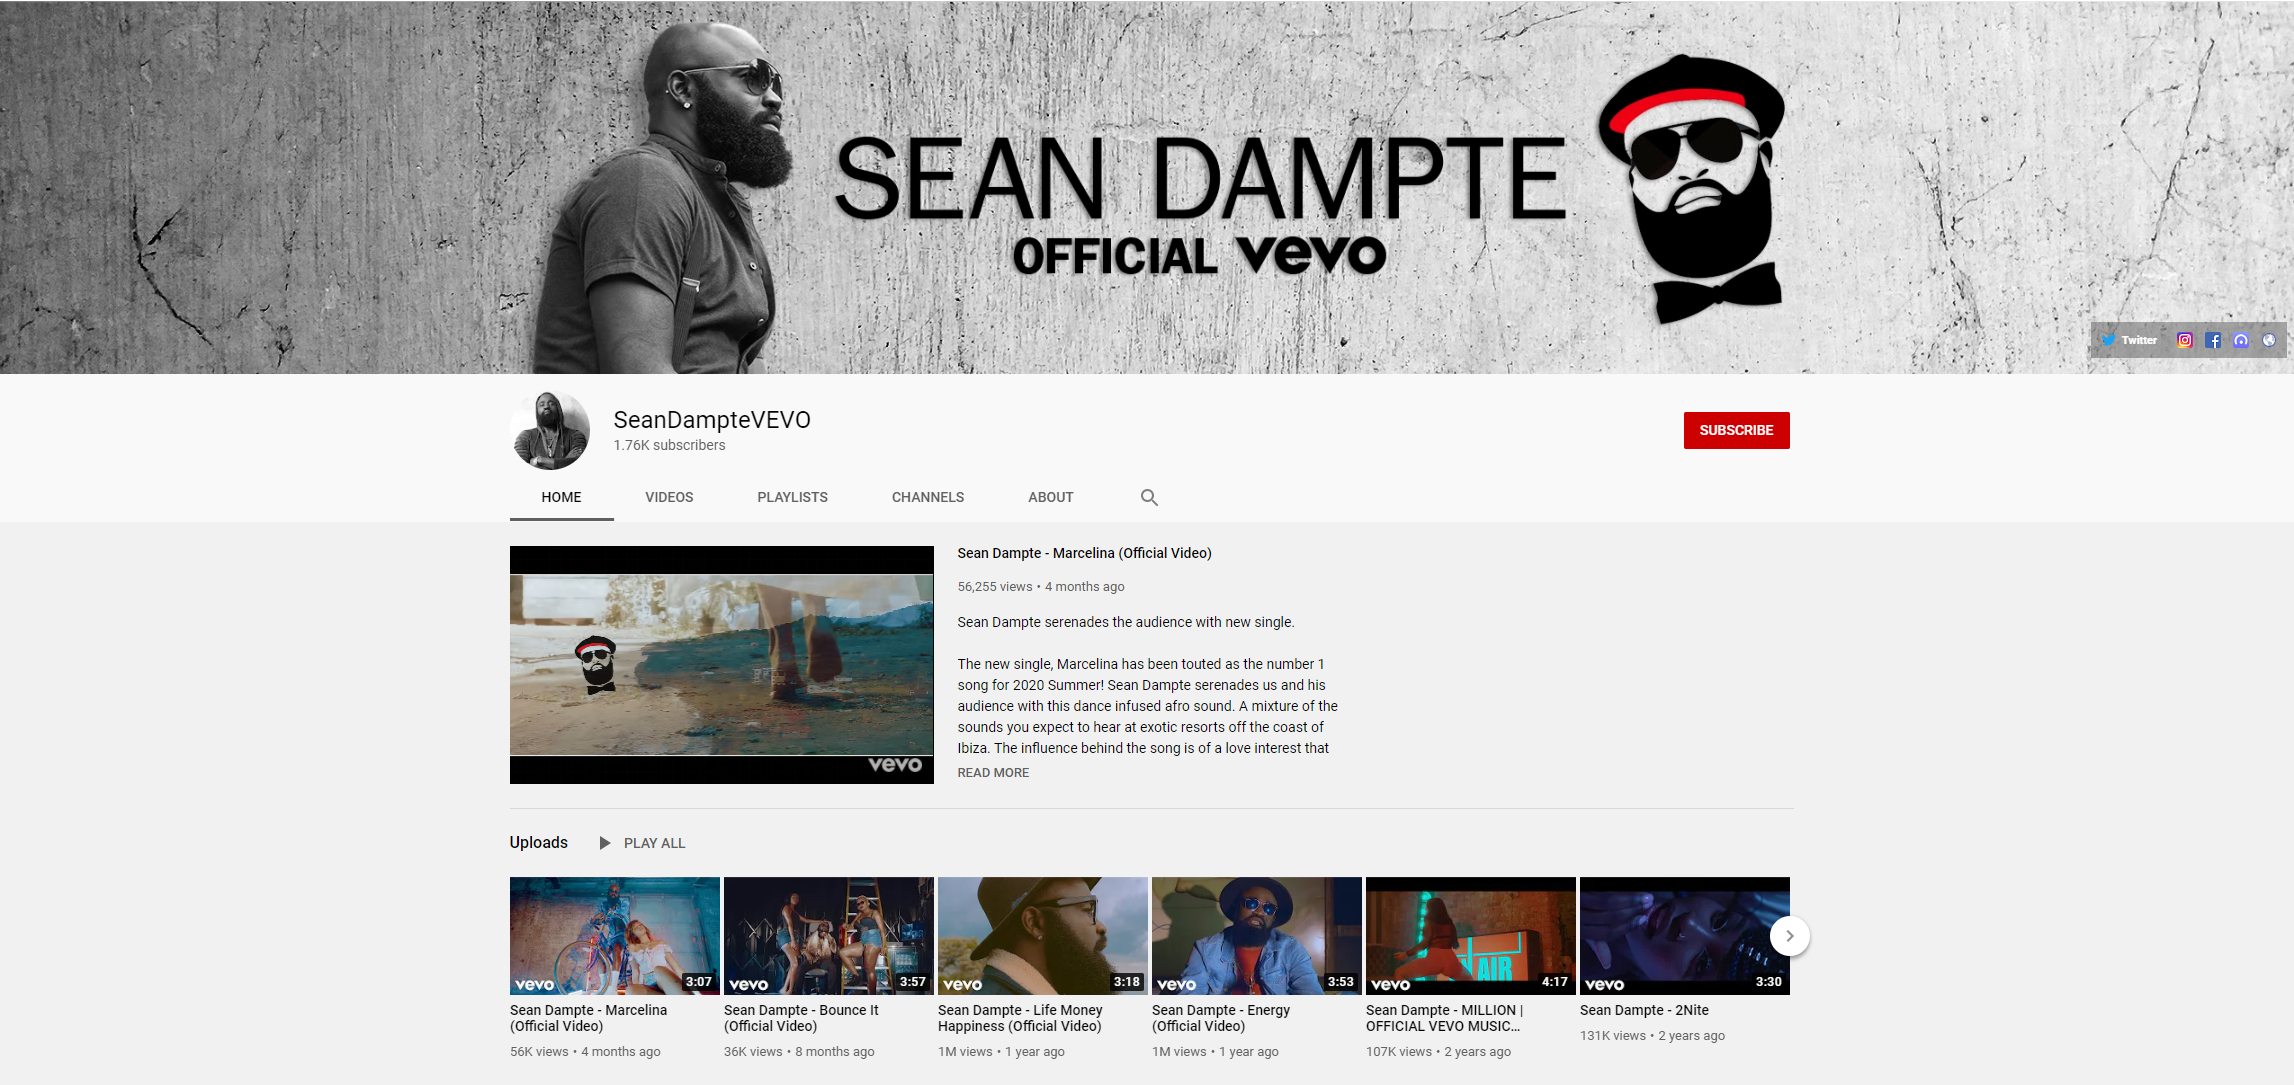 Sean Dampte Official VEVO Channel